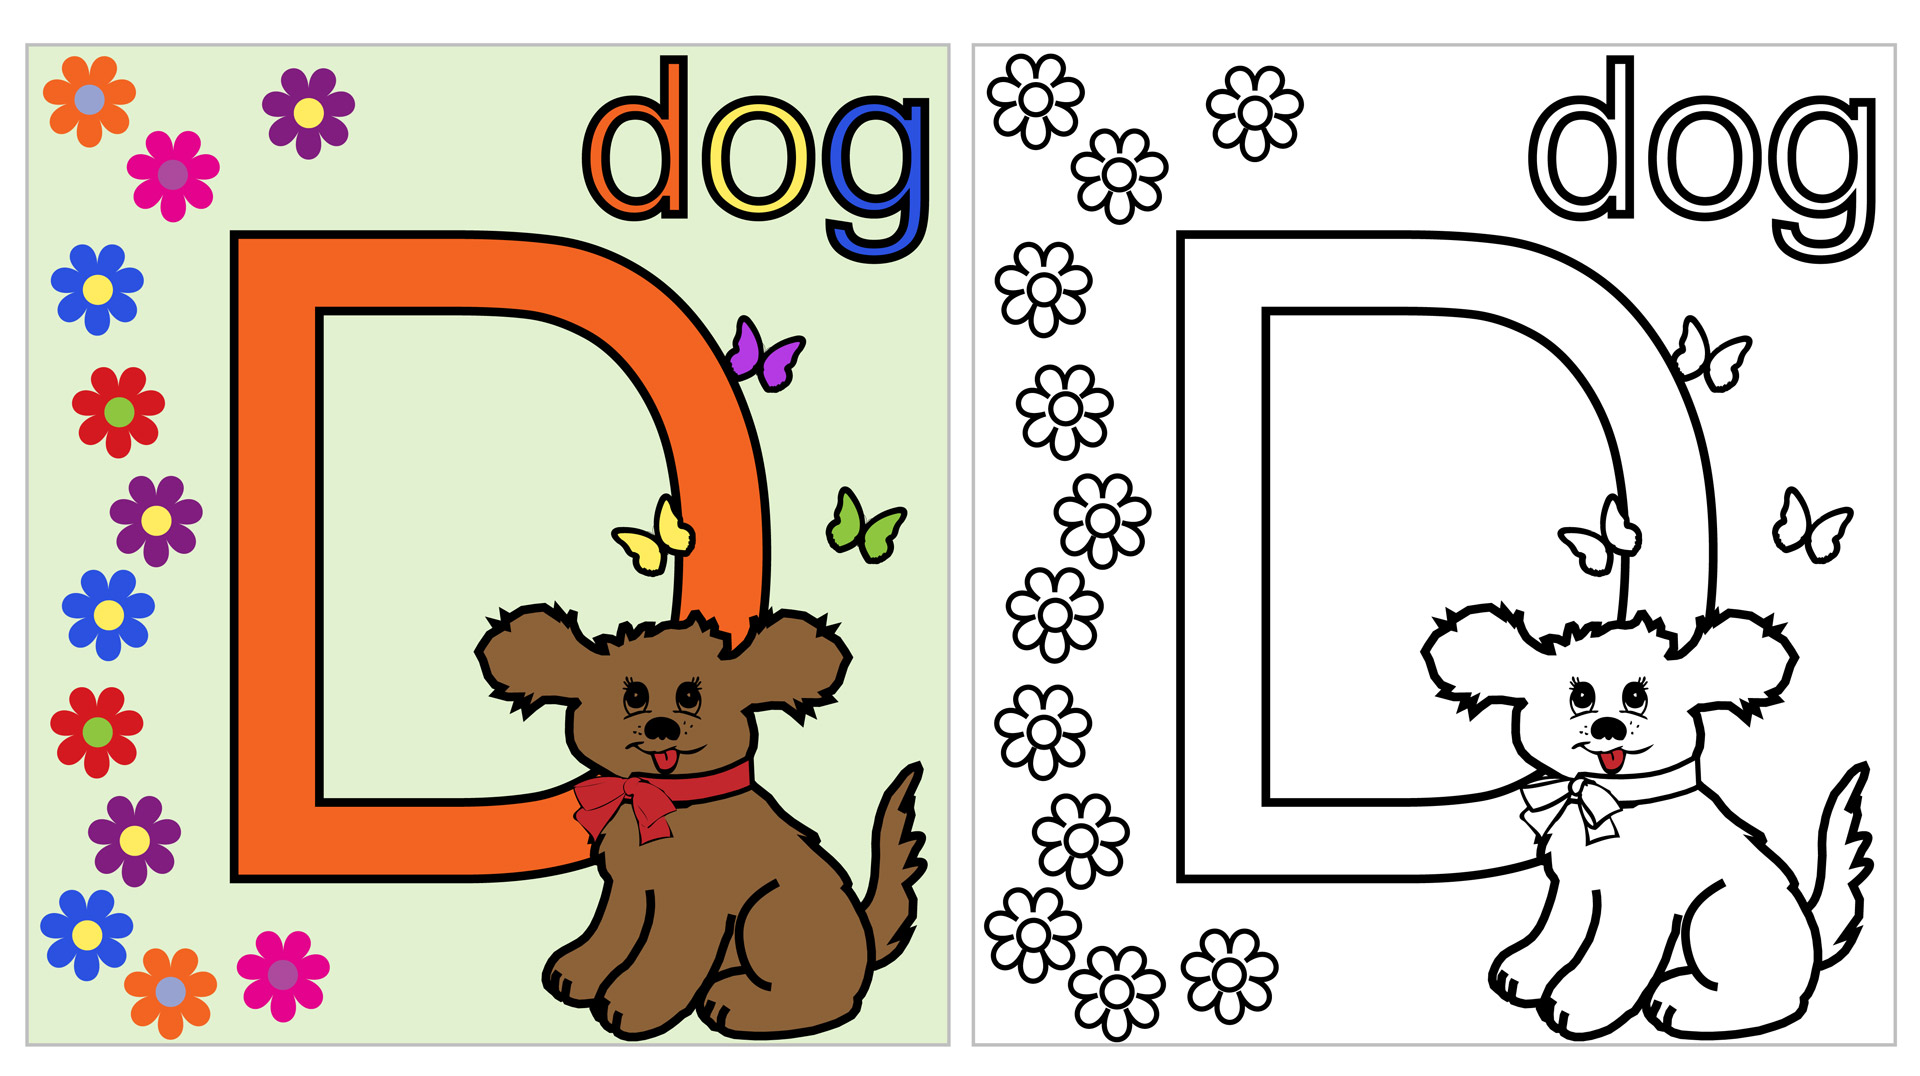 Dog Coloring Page D Free Stock Photo